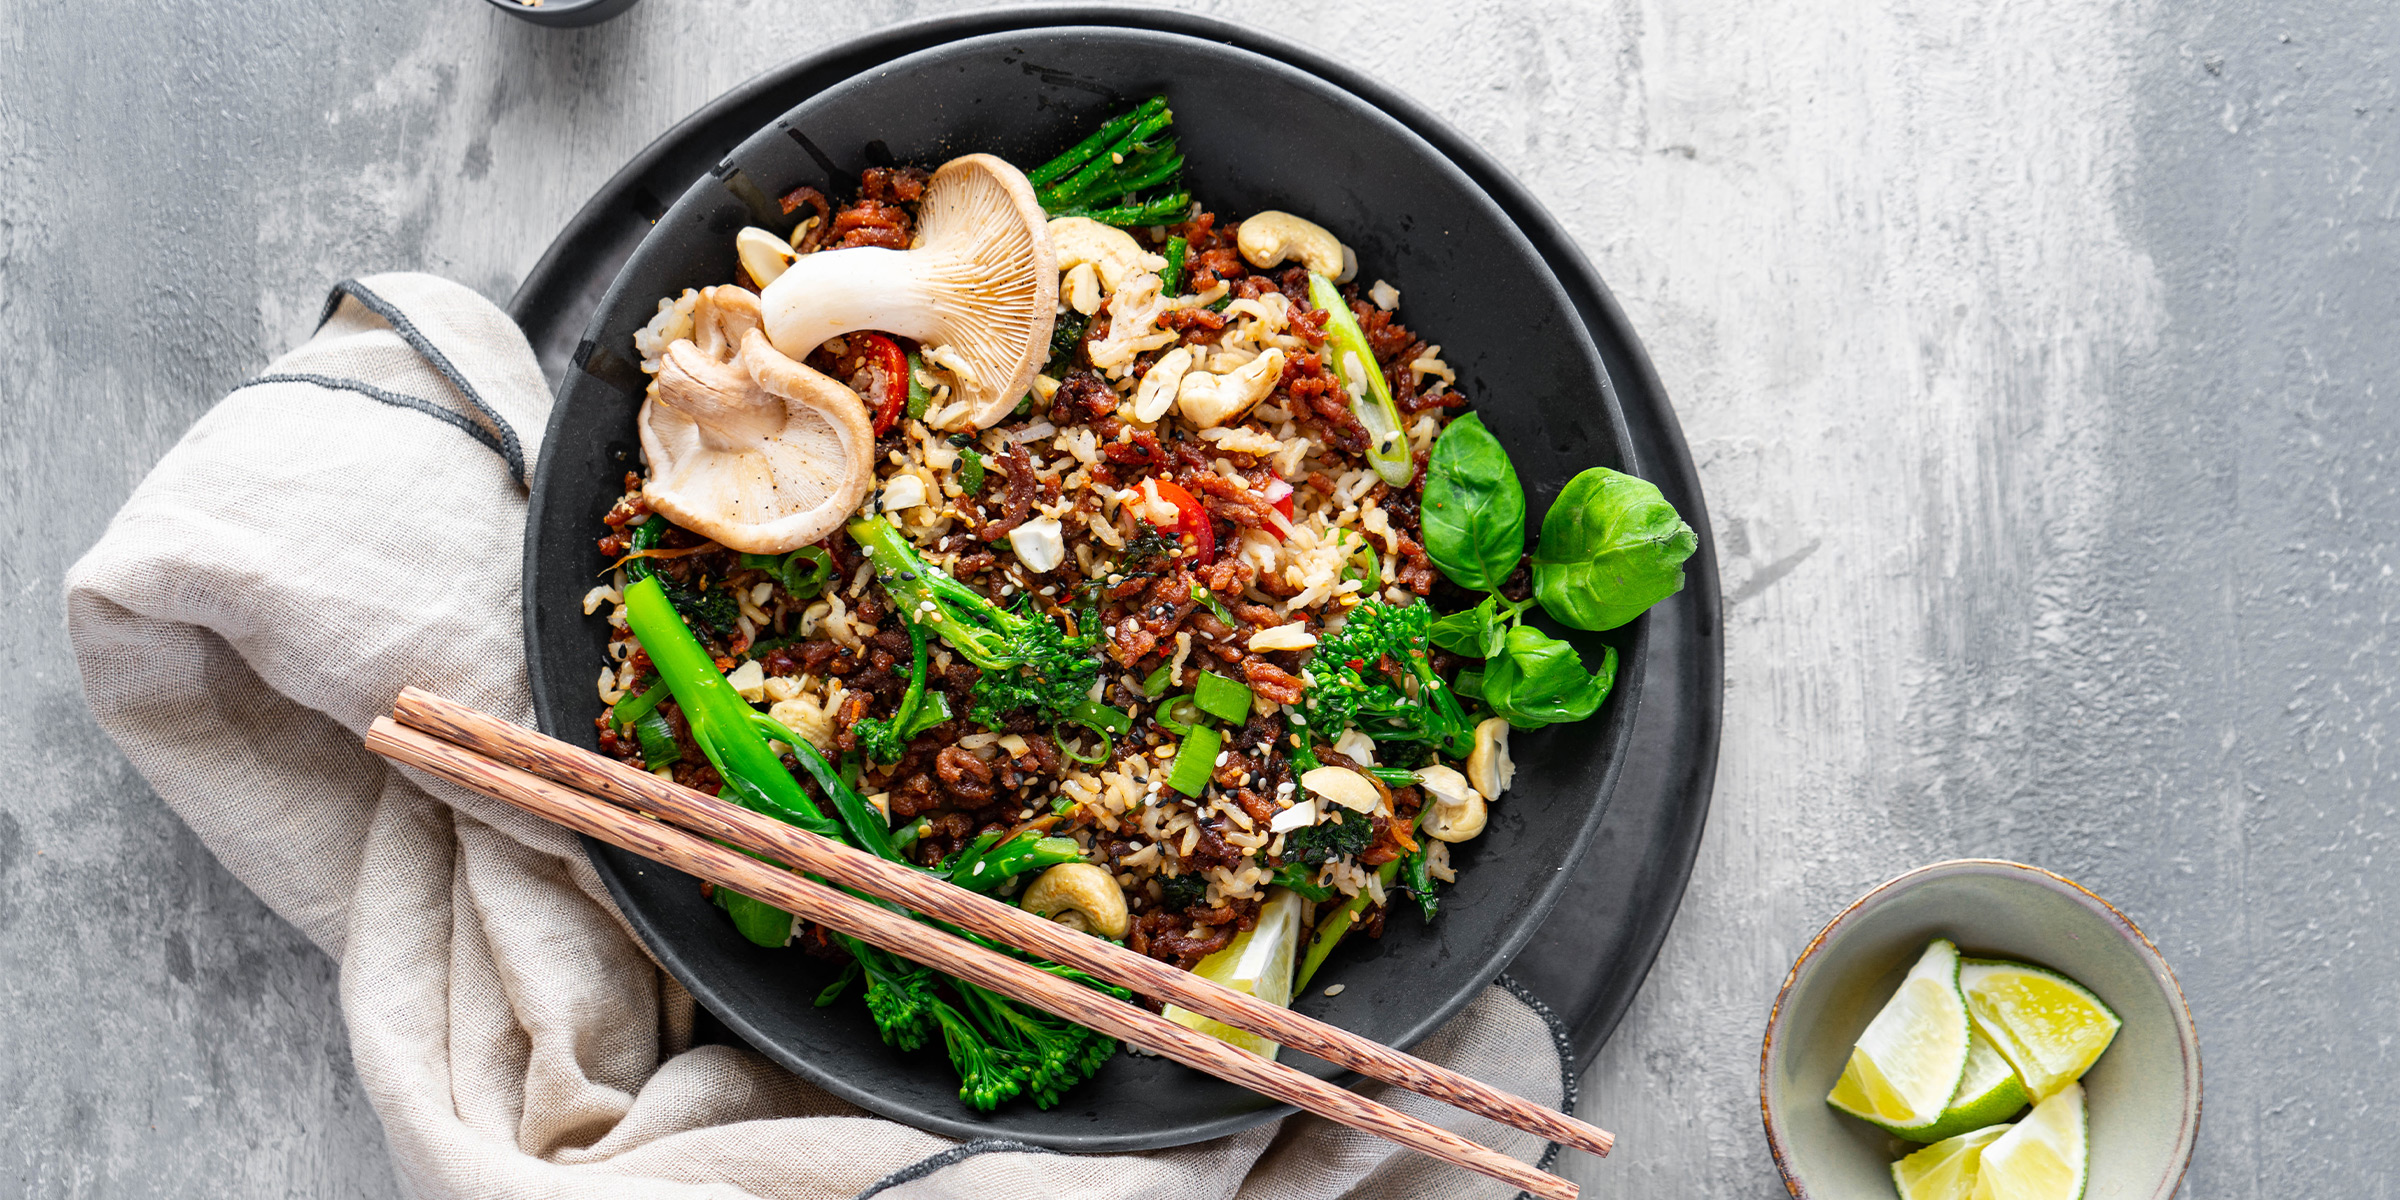 Power stir fry made with Meatless Farm ground